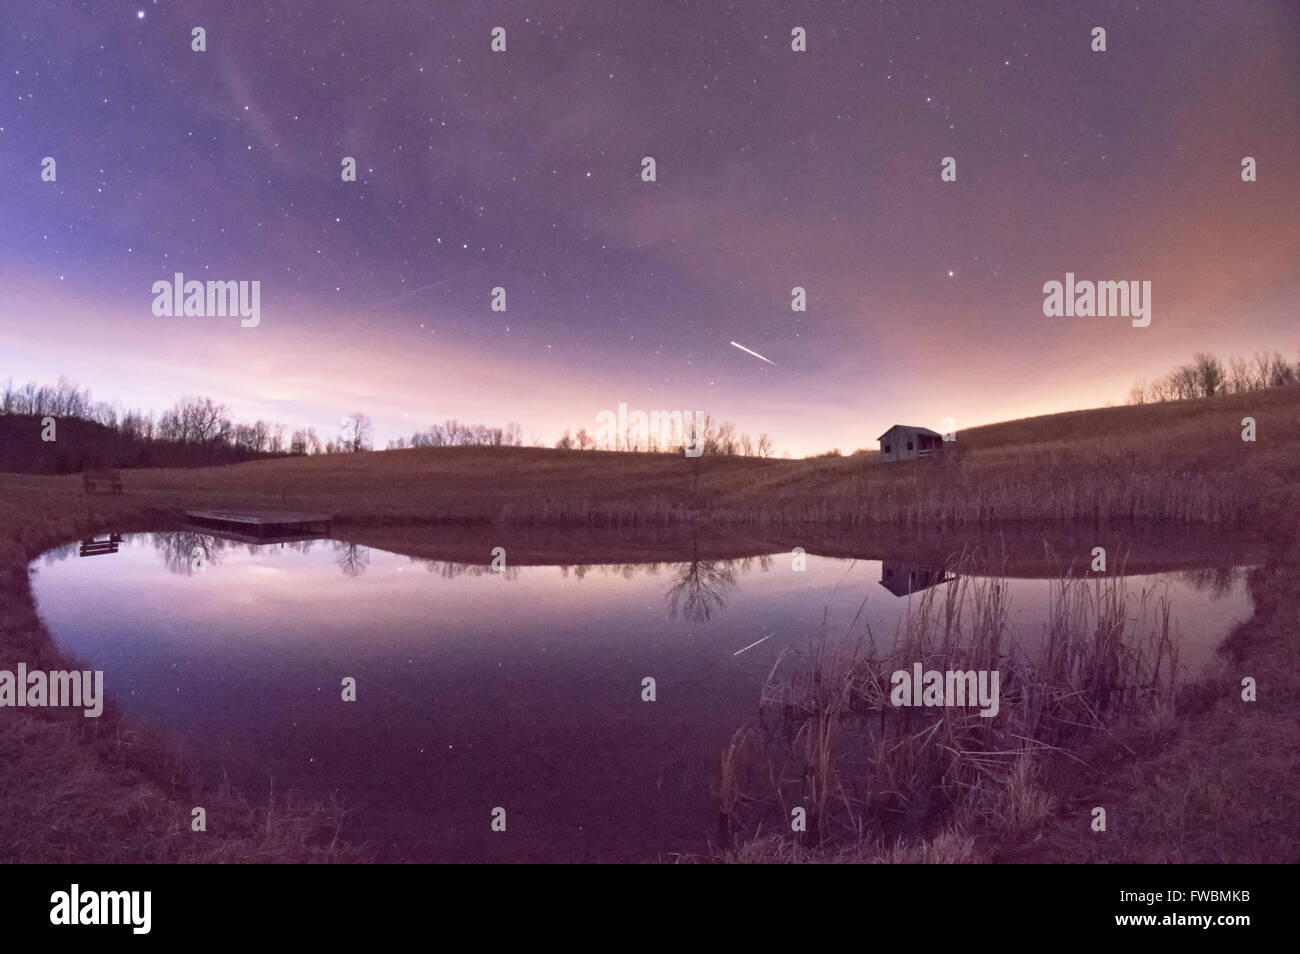 The international space station streaks across the night sky just after twilight reflected off a pond. - Stock Image